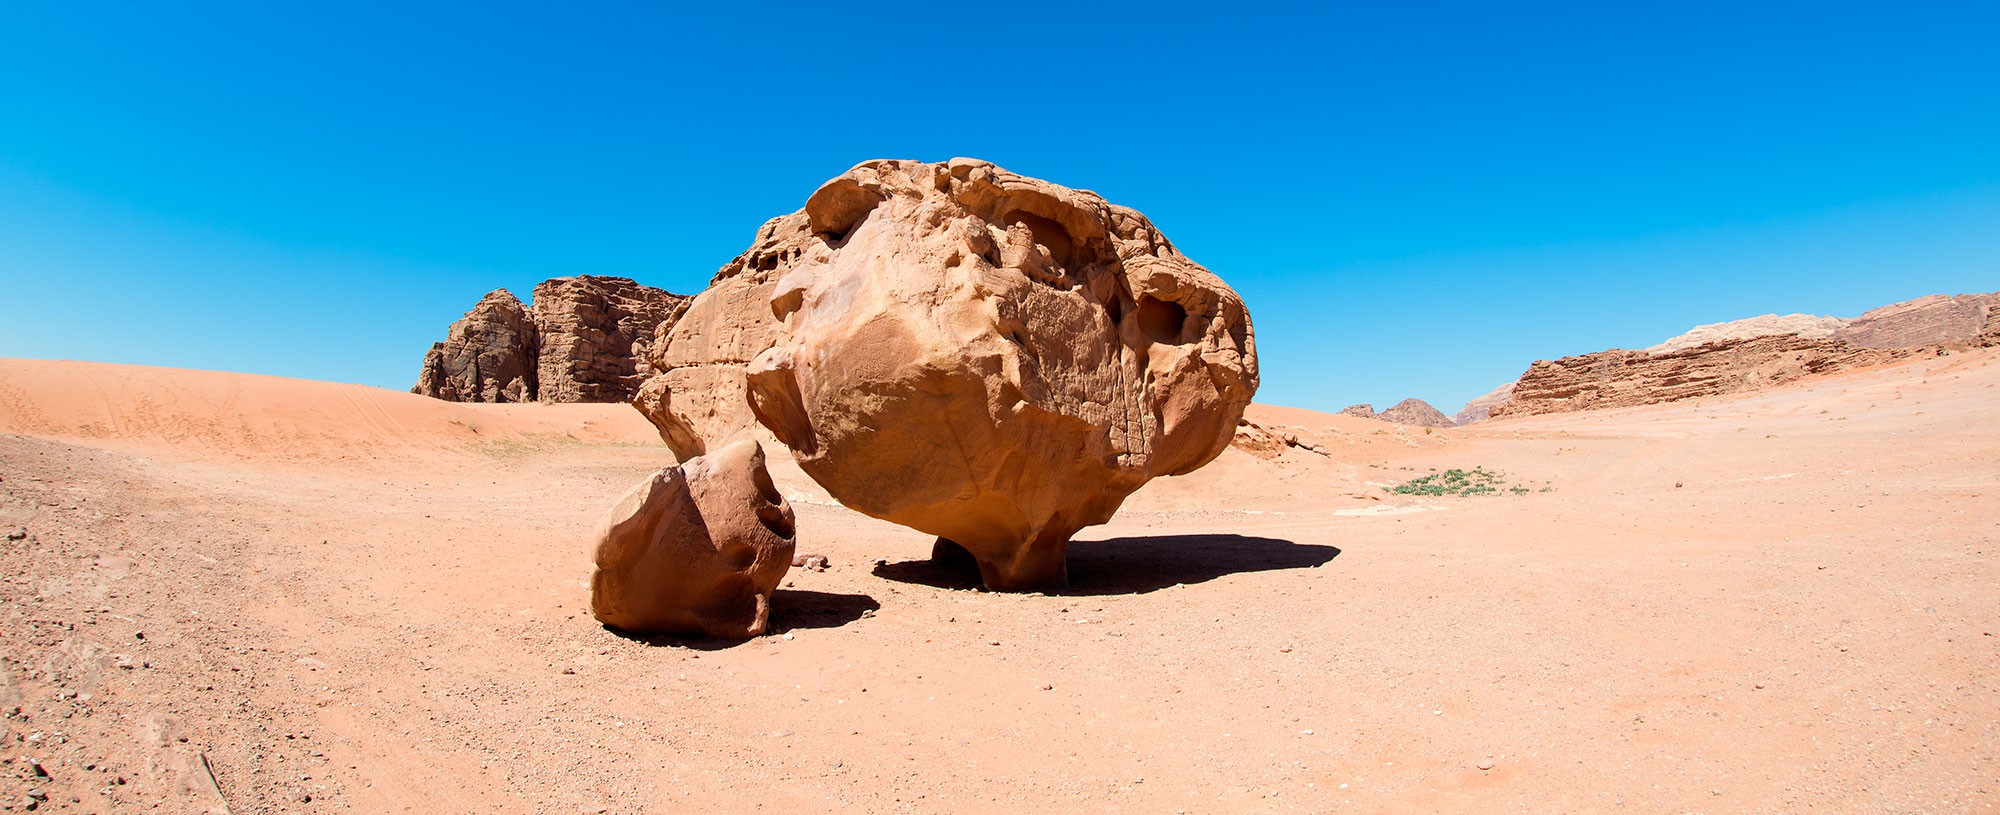 Incredible Sandstone Monuments of Wadi Rum